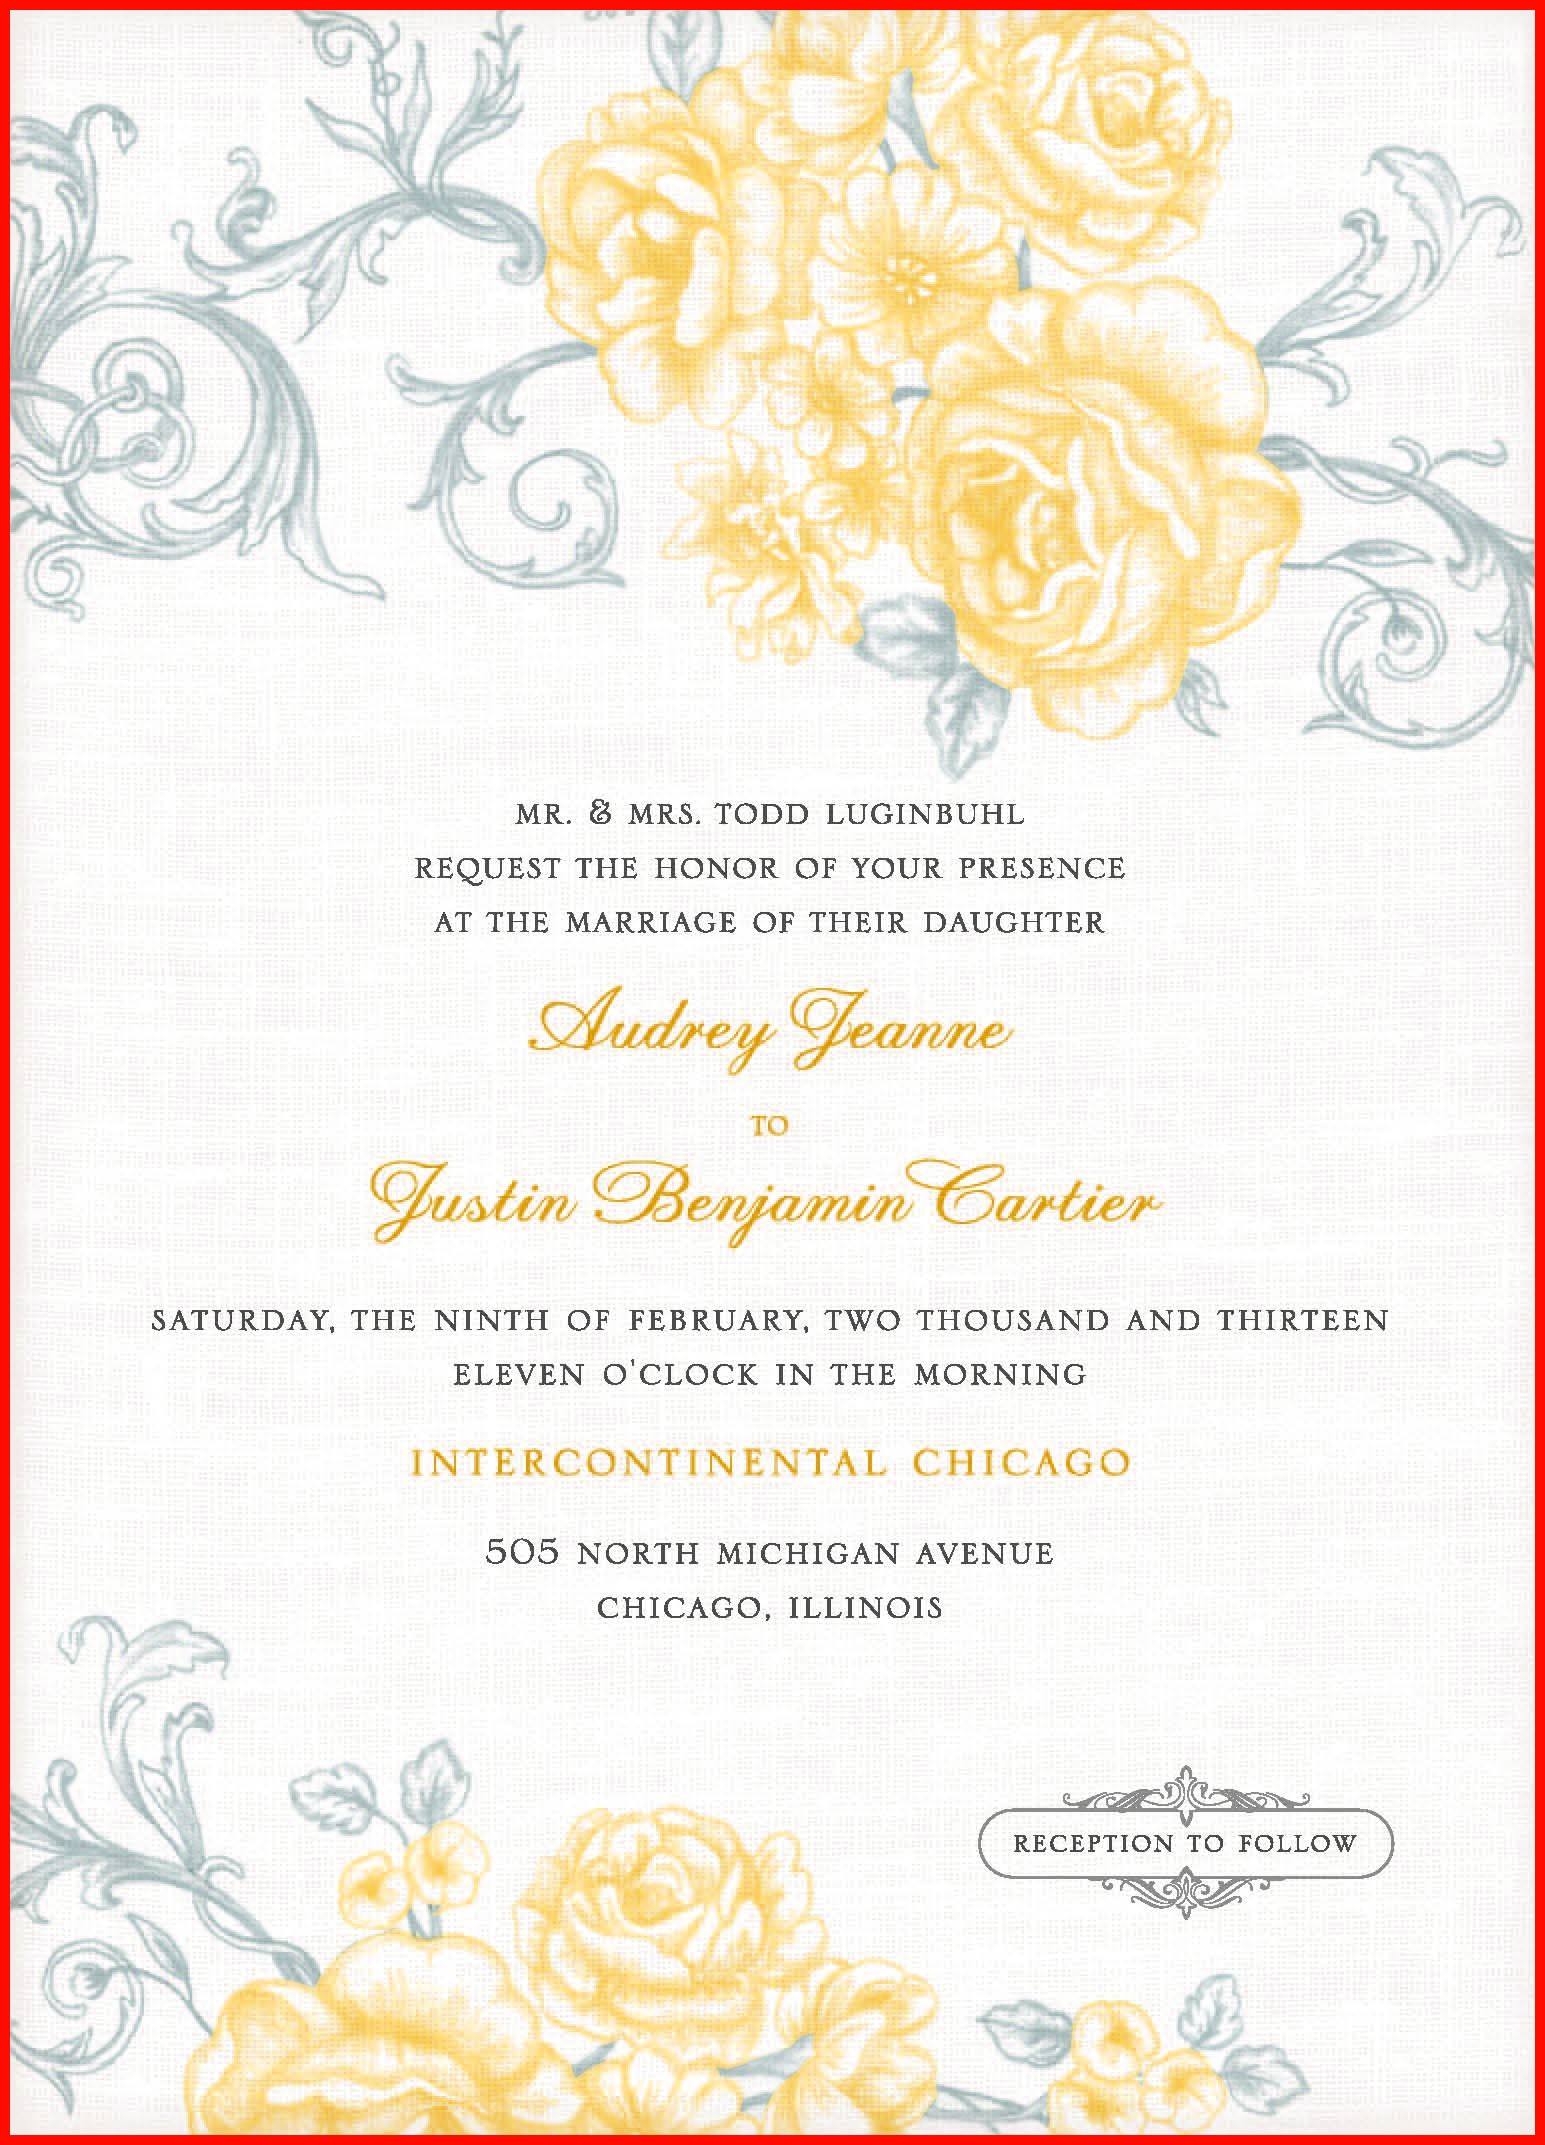 Free Dinner Invitation Templates For Word 112841 Invitation Word Templates Free Word Invitation Templates Free